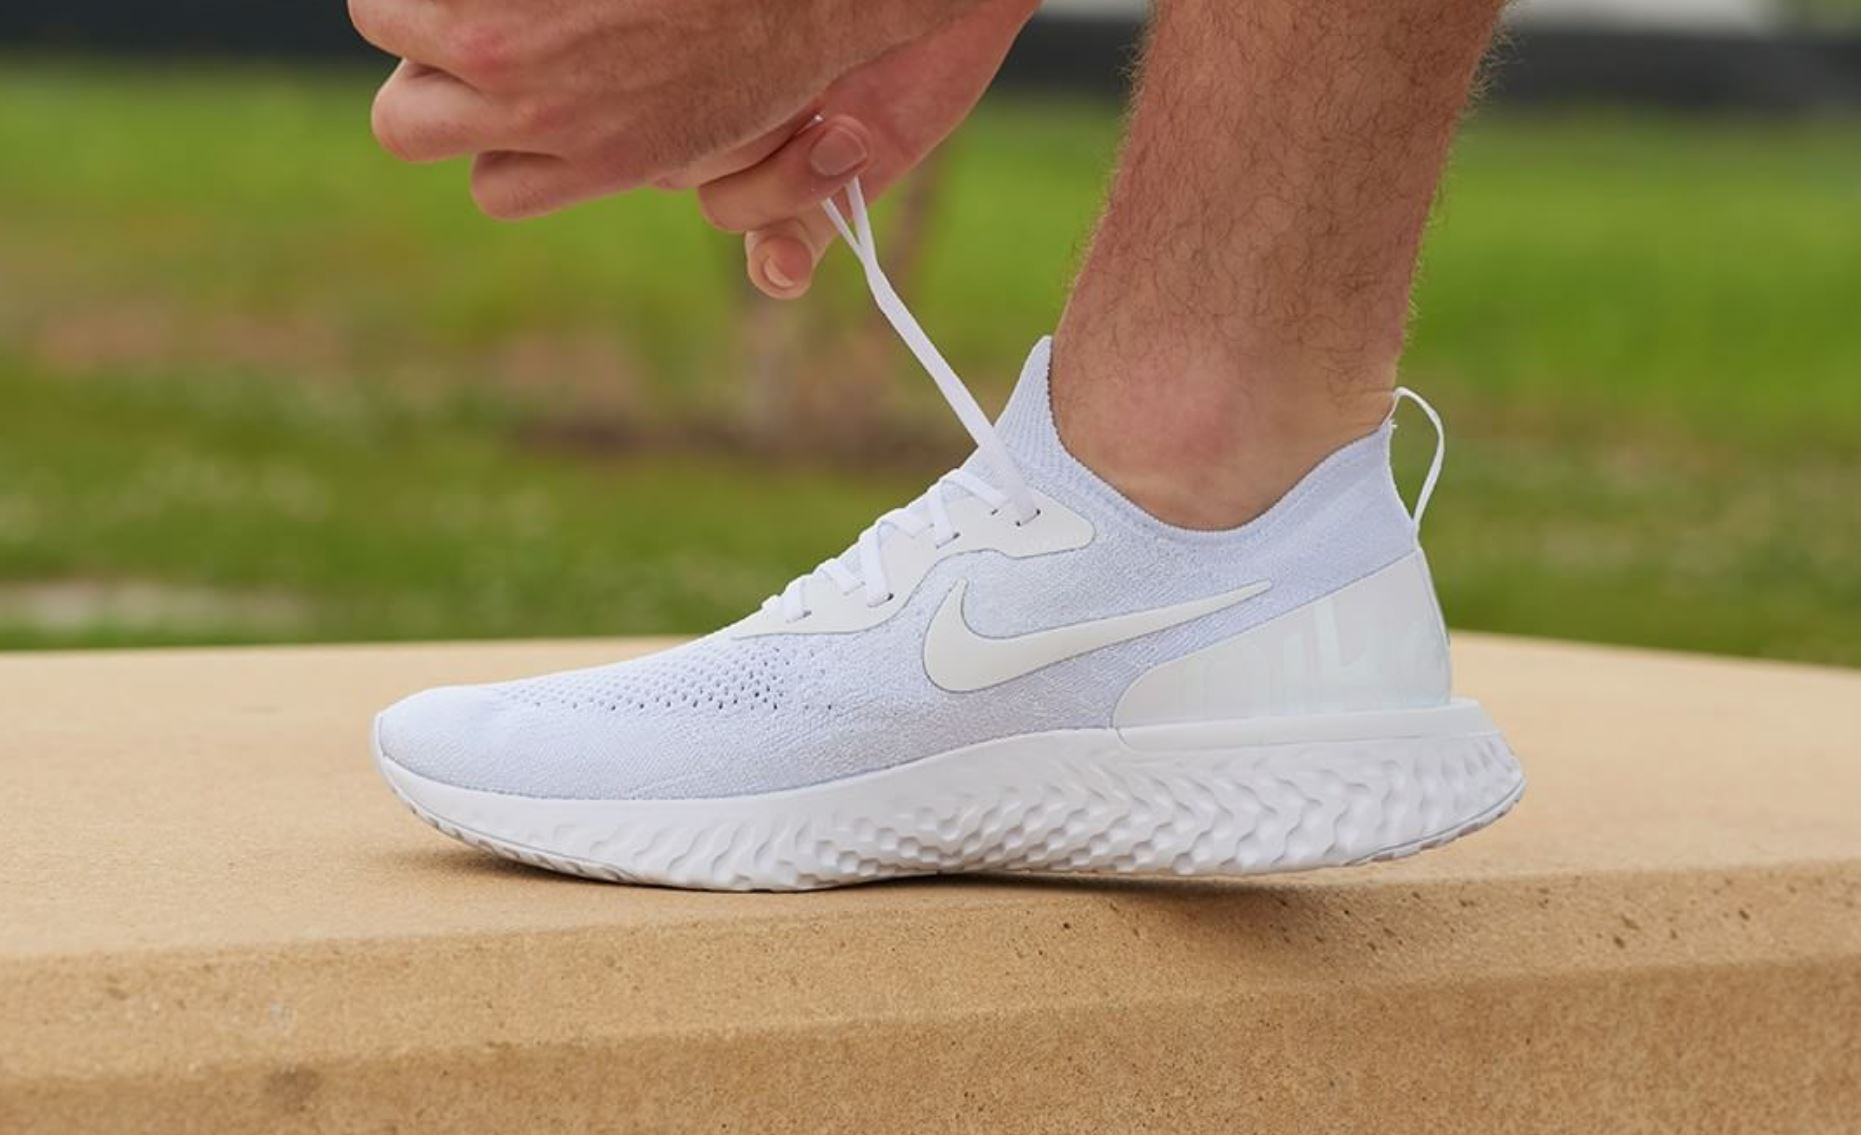 new arrivals 633f4 1c1b3 Triple White' Nike Epic React Flyknit and Air VaporMax 2 ...